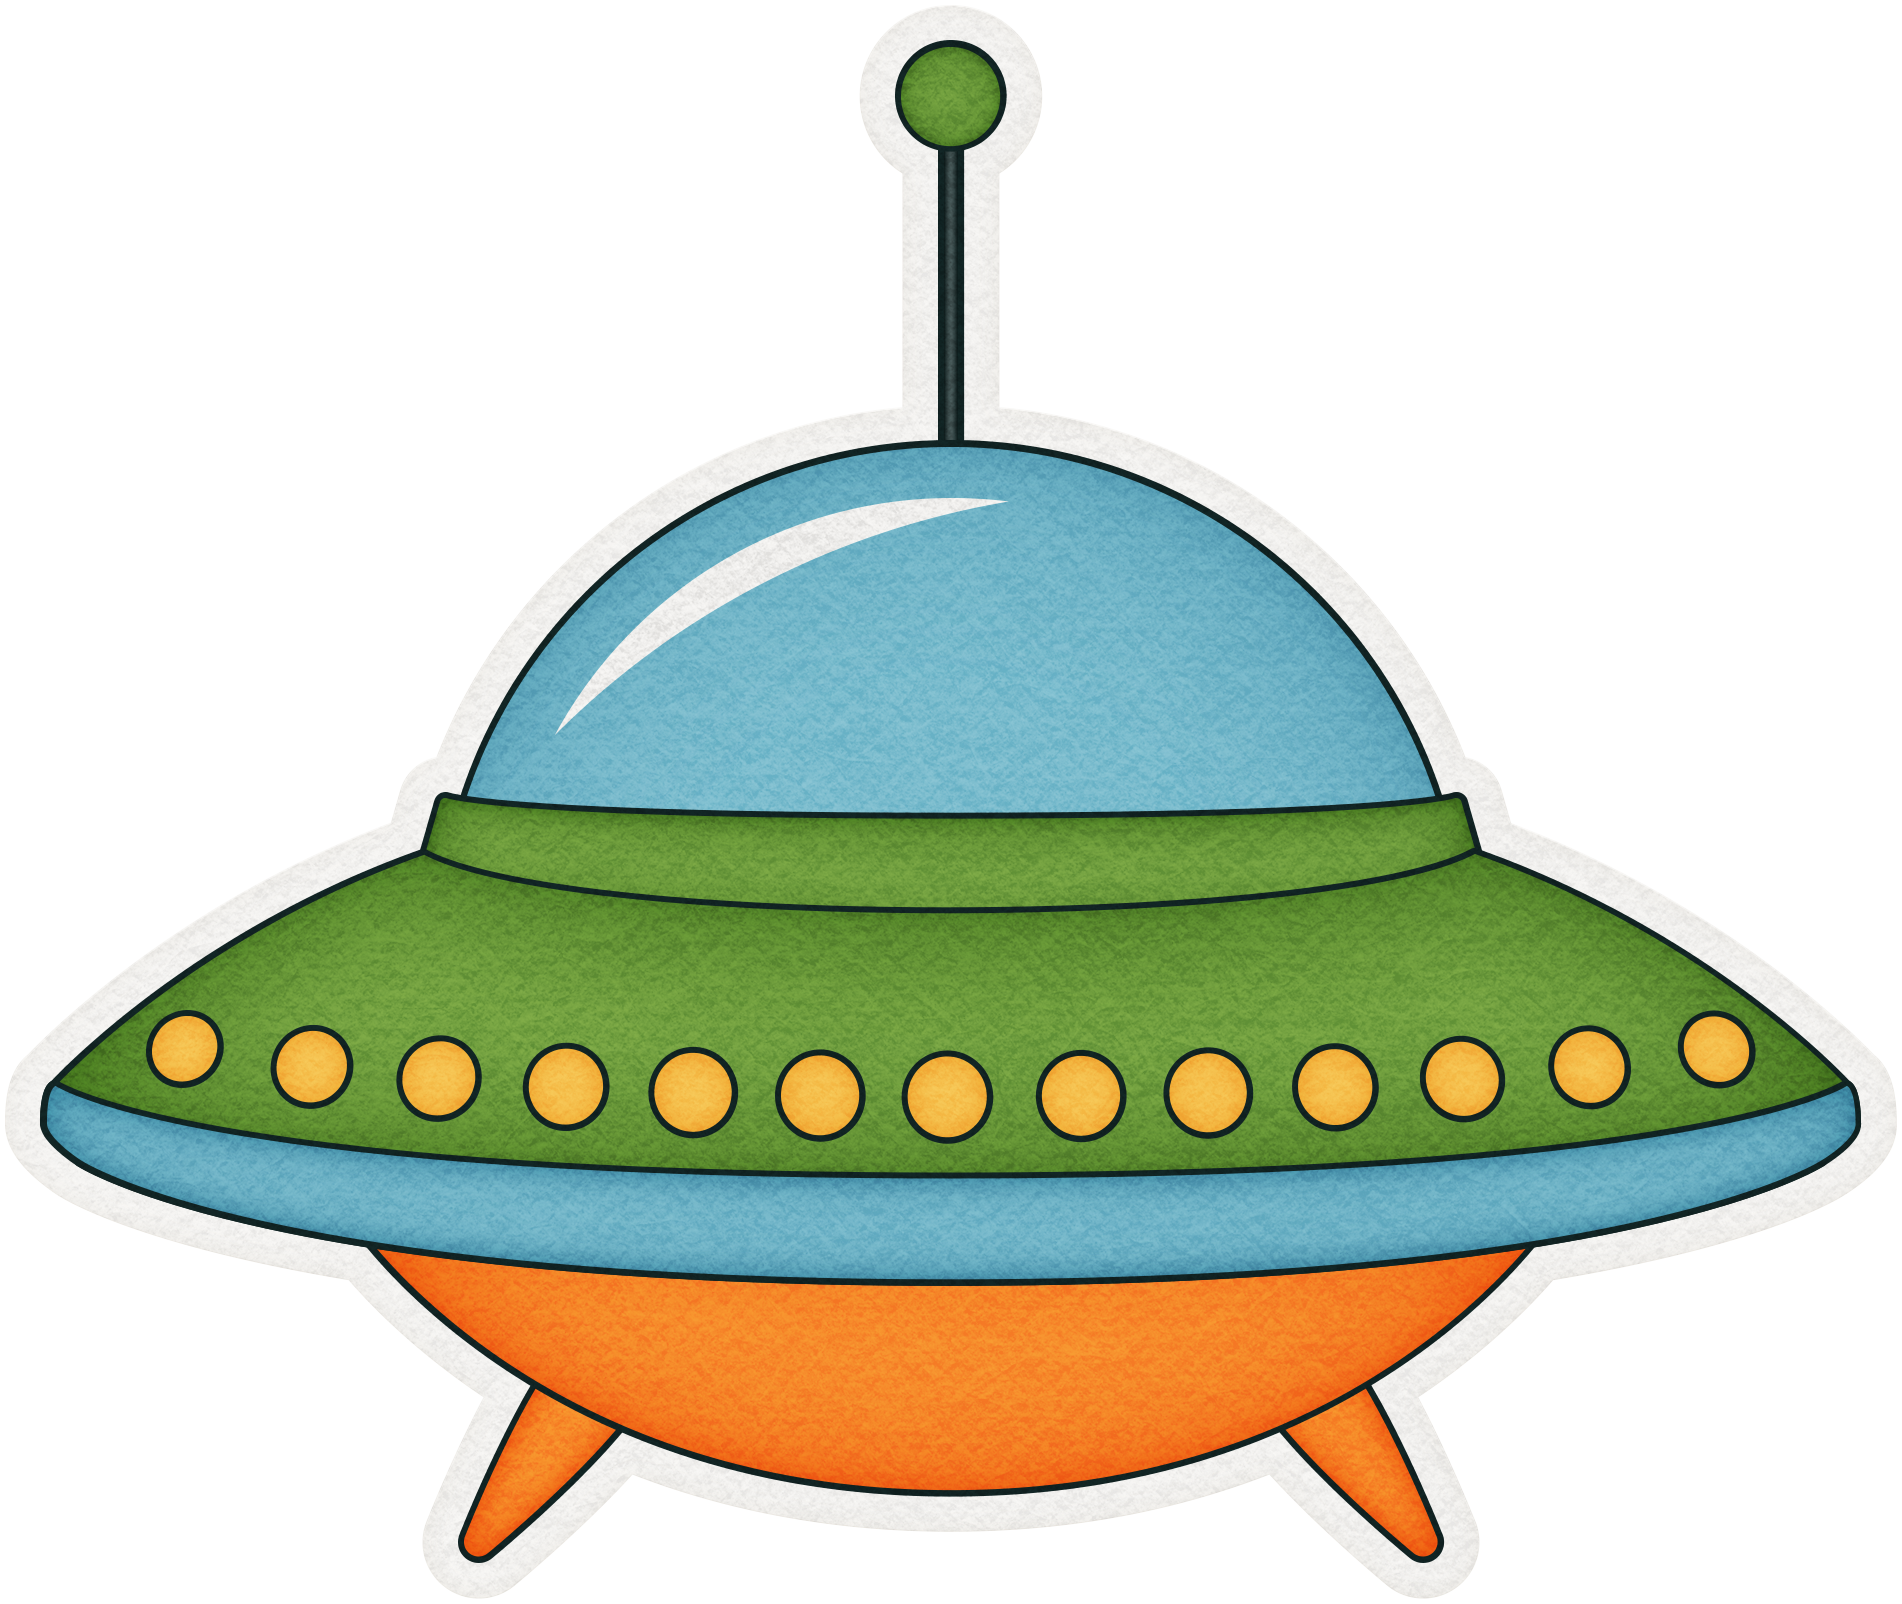 Watermelon clipart green object. Cartoon unidentified flying clip